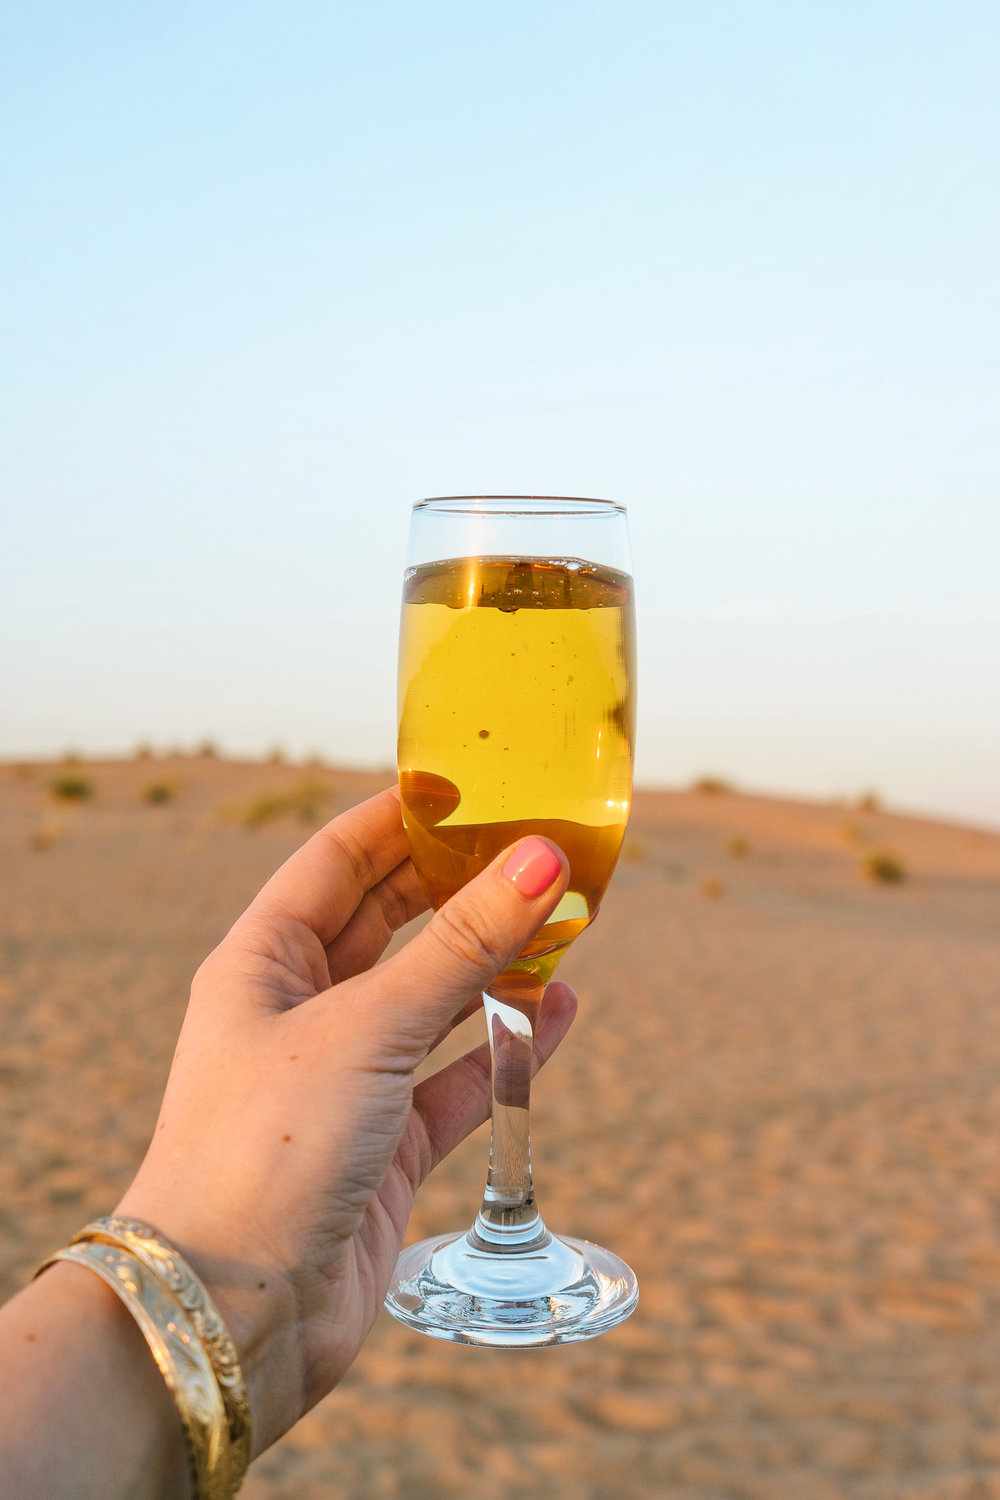 Cheers to a fun desert safari in Dubai!